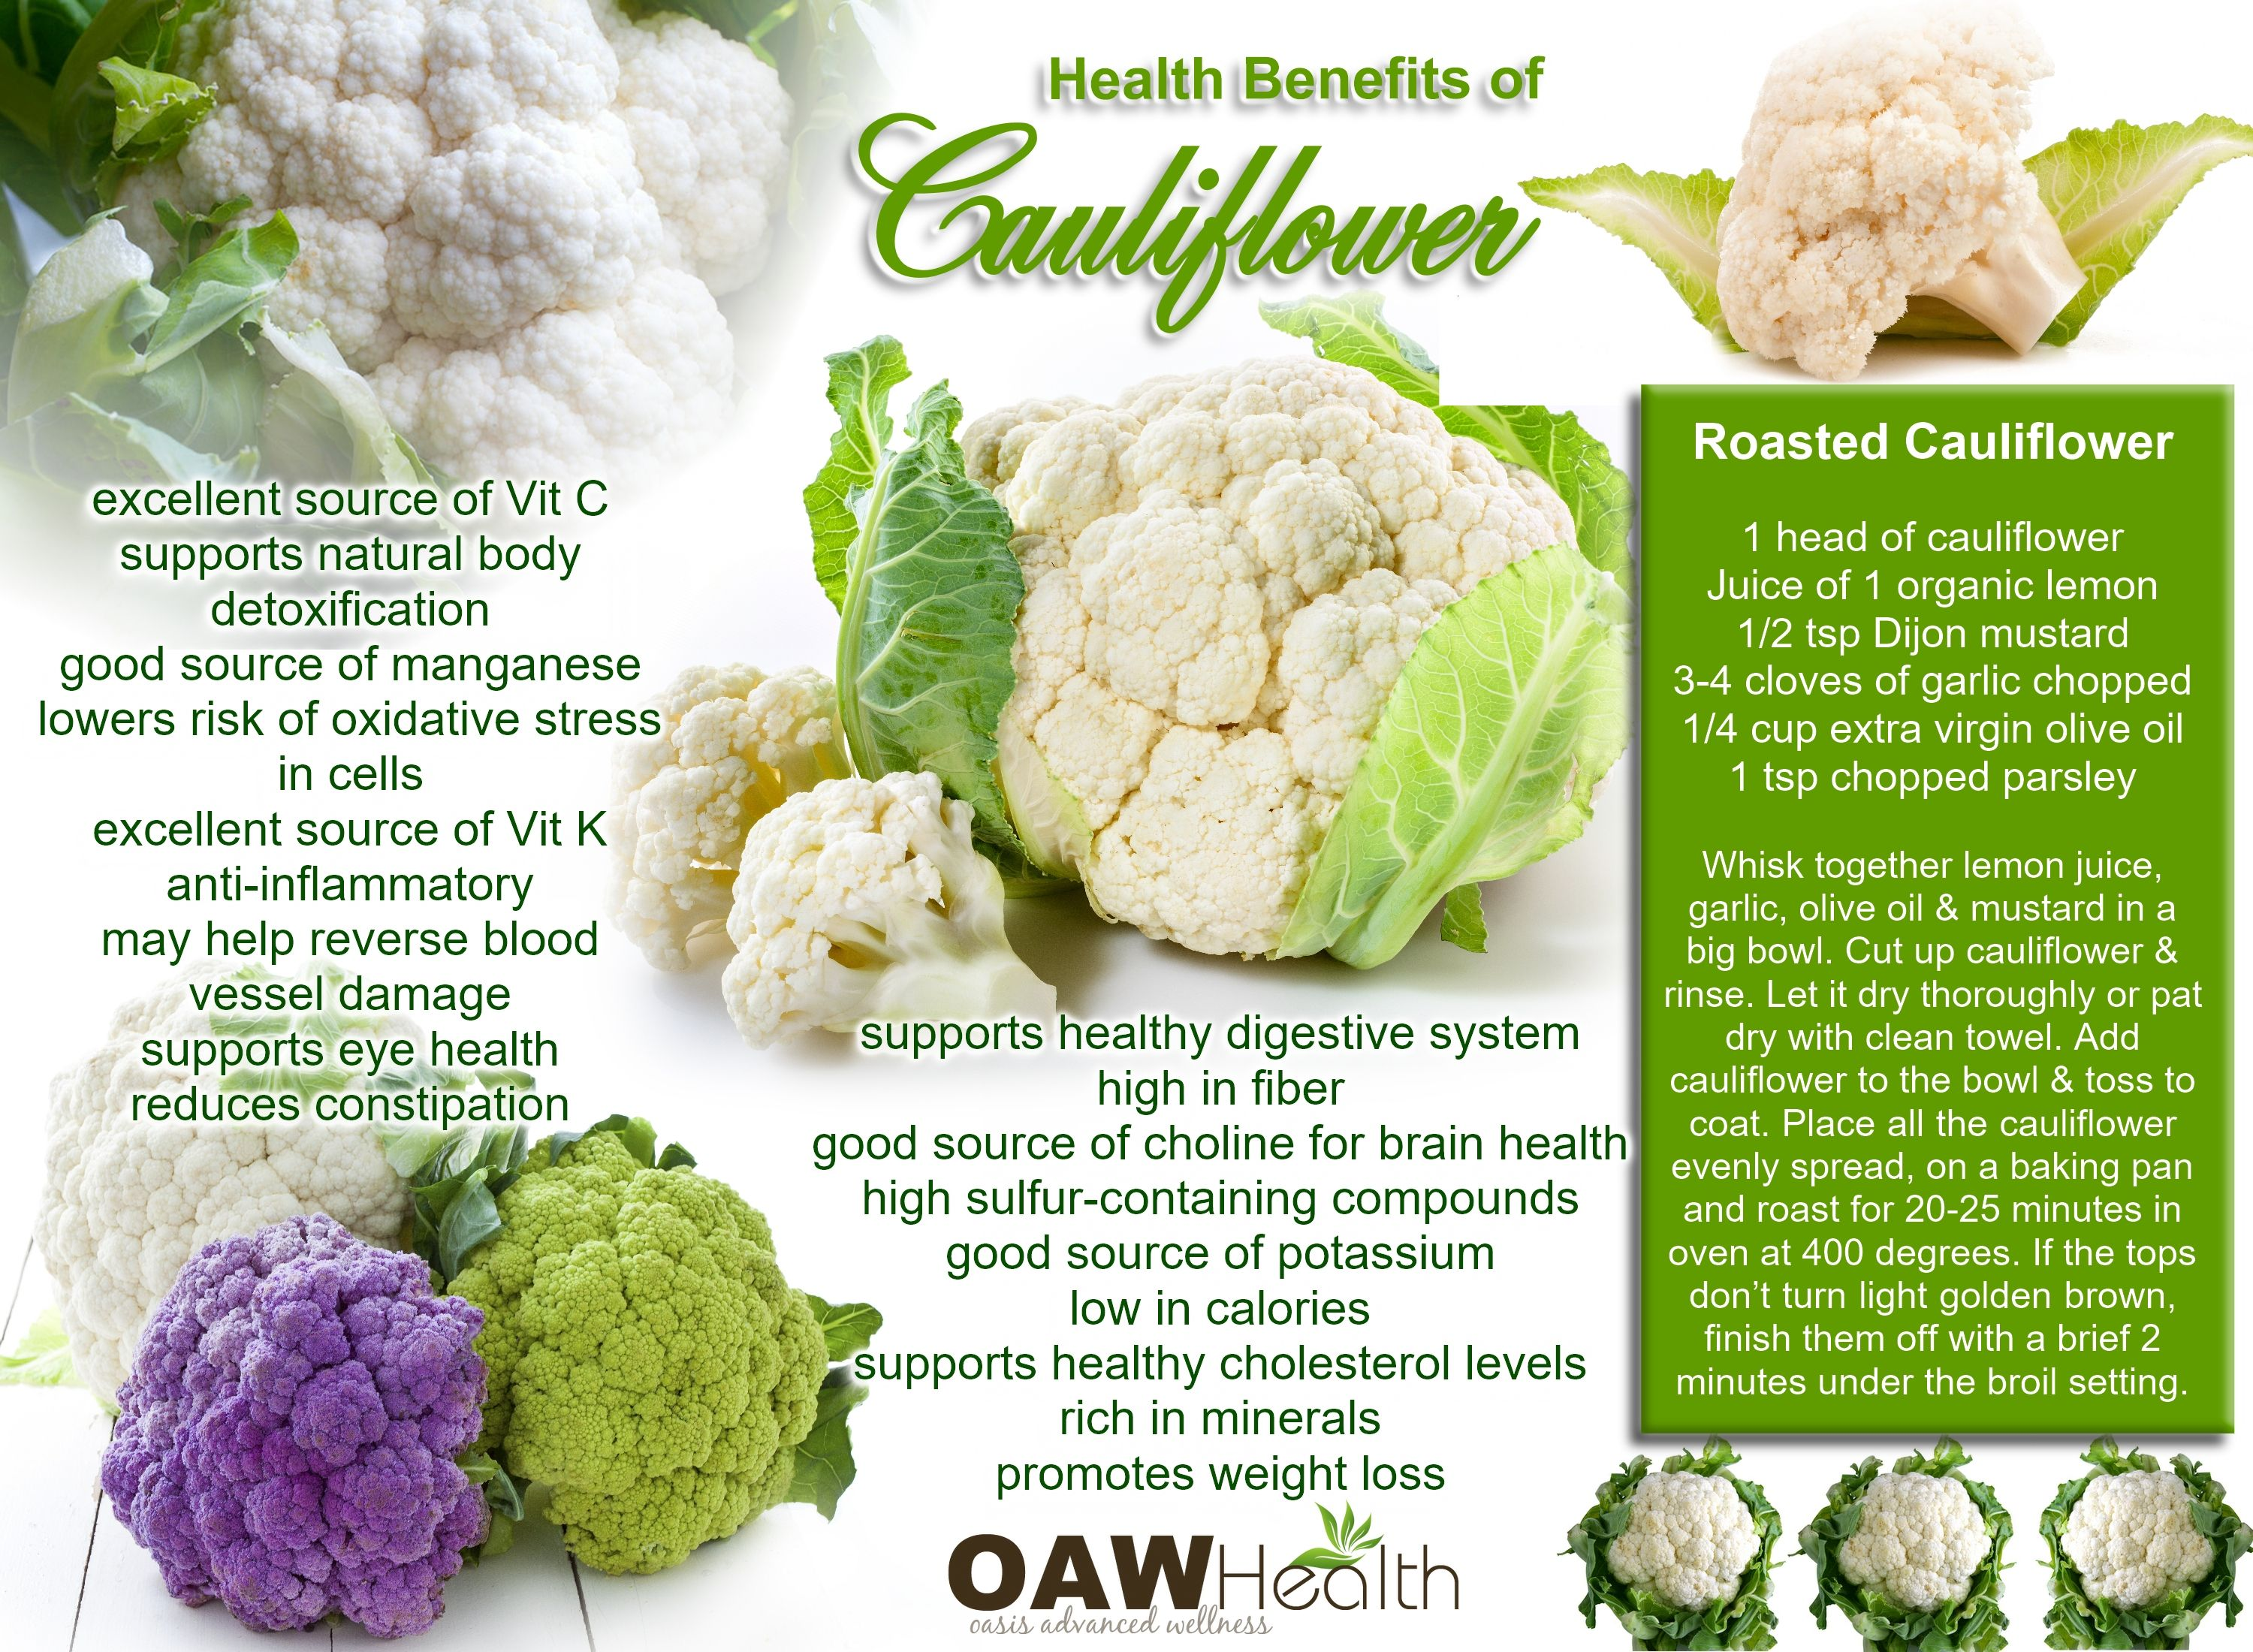 Cauliflower strengthens blood vessels and liver 99